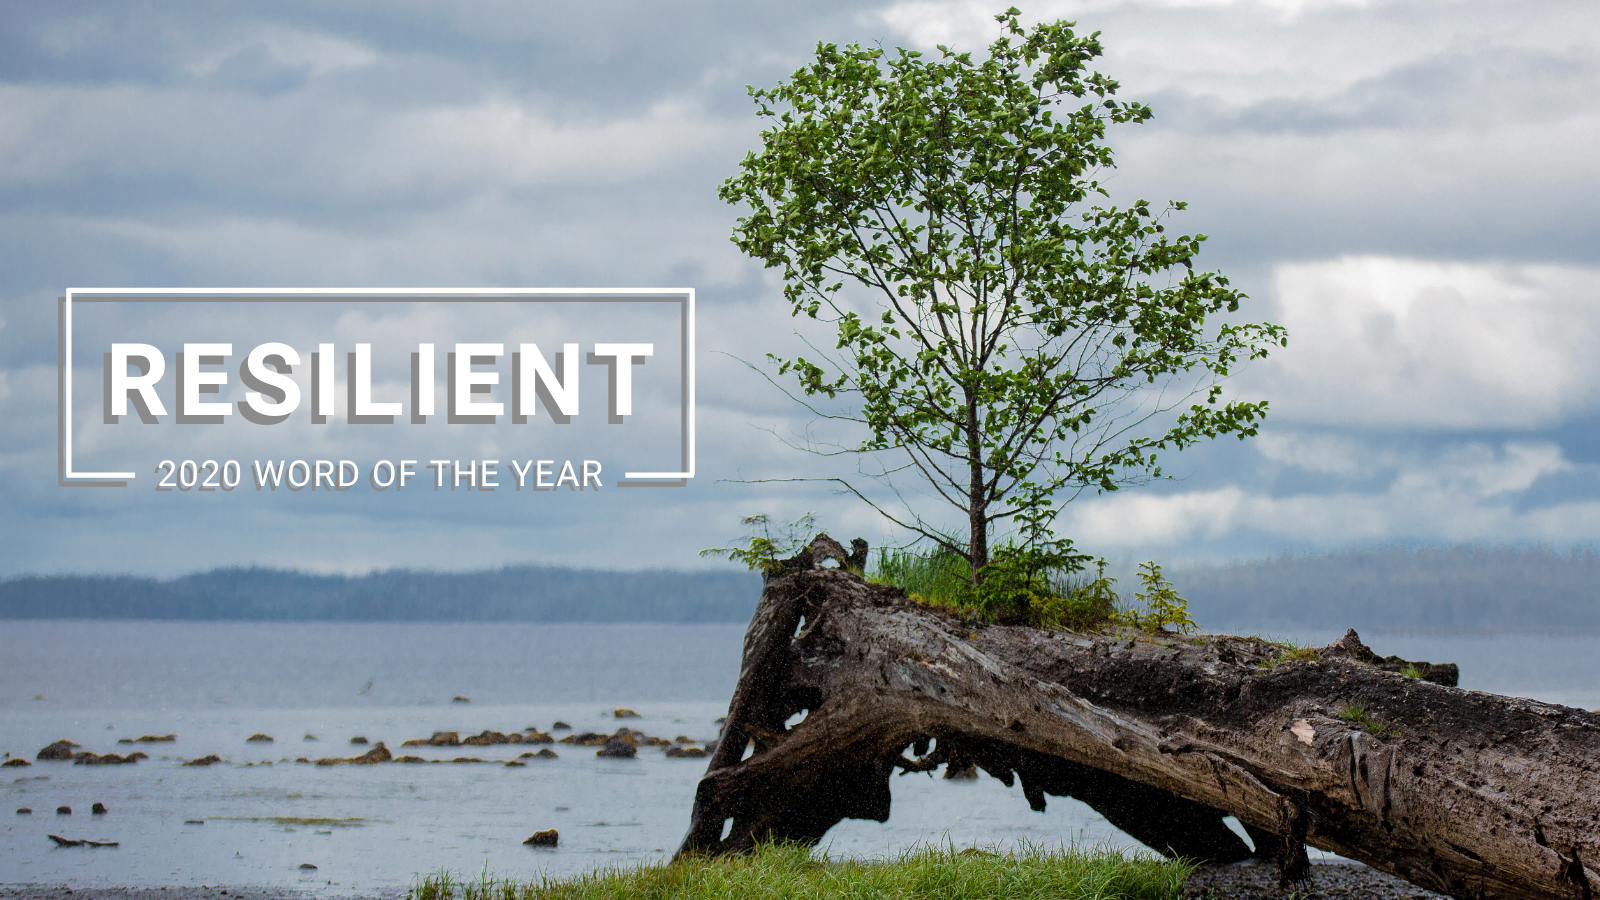 2020 Word of the Year: Resilient